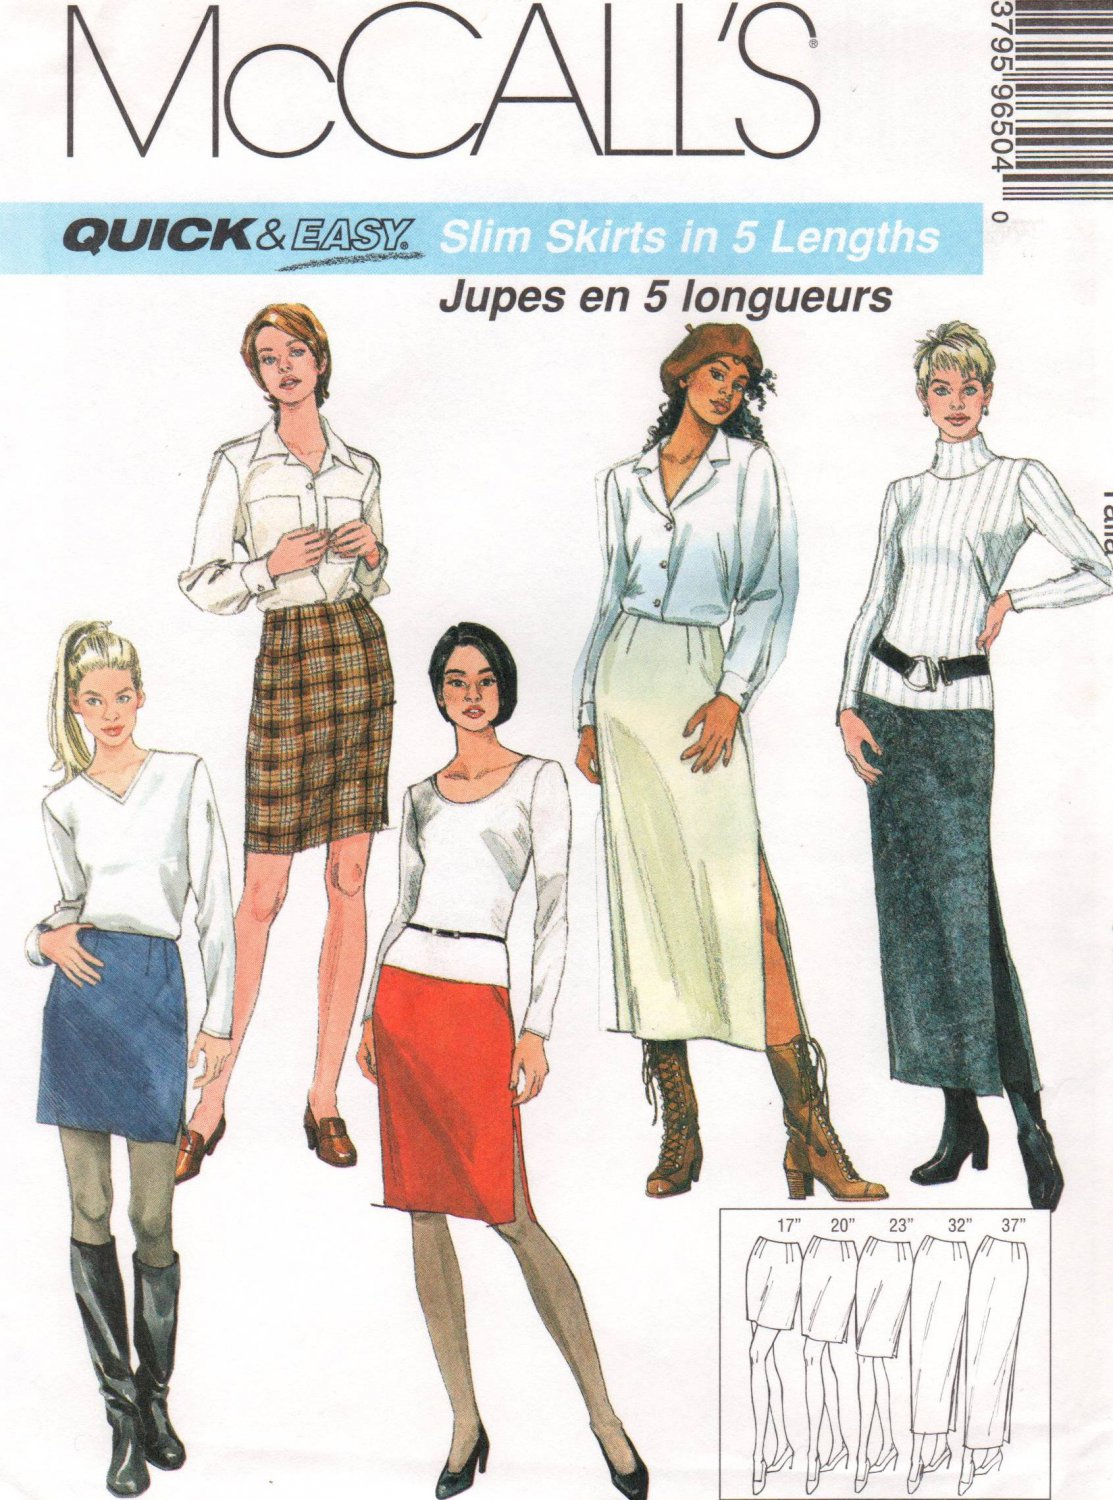 MCCALLS #9650 Uncut Sz 14-18 Slim Skirts in 5 Lengths, Optional Slit Sewing Pattern